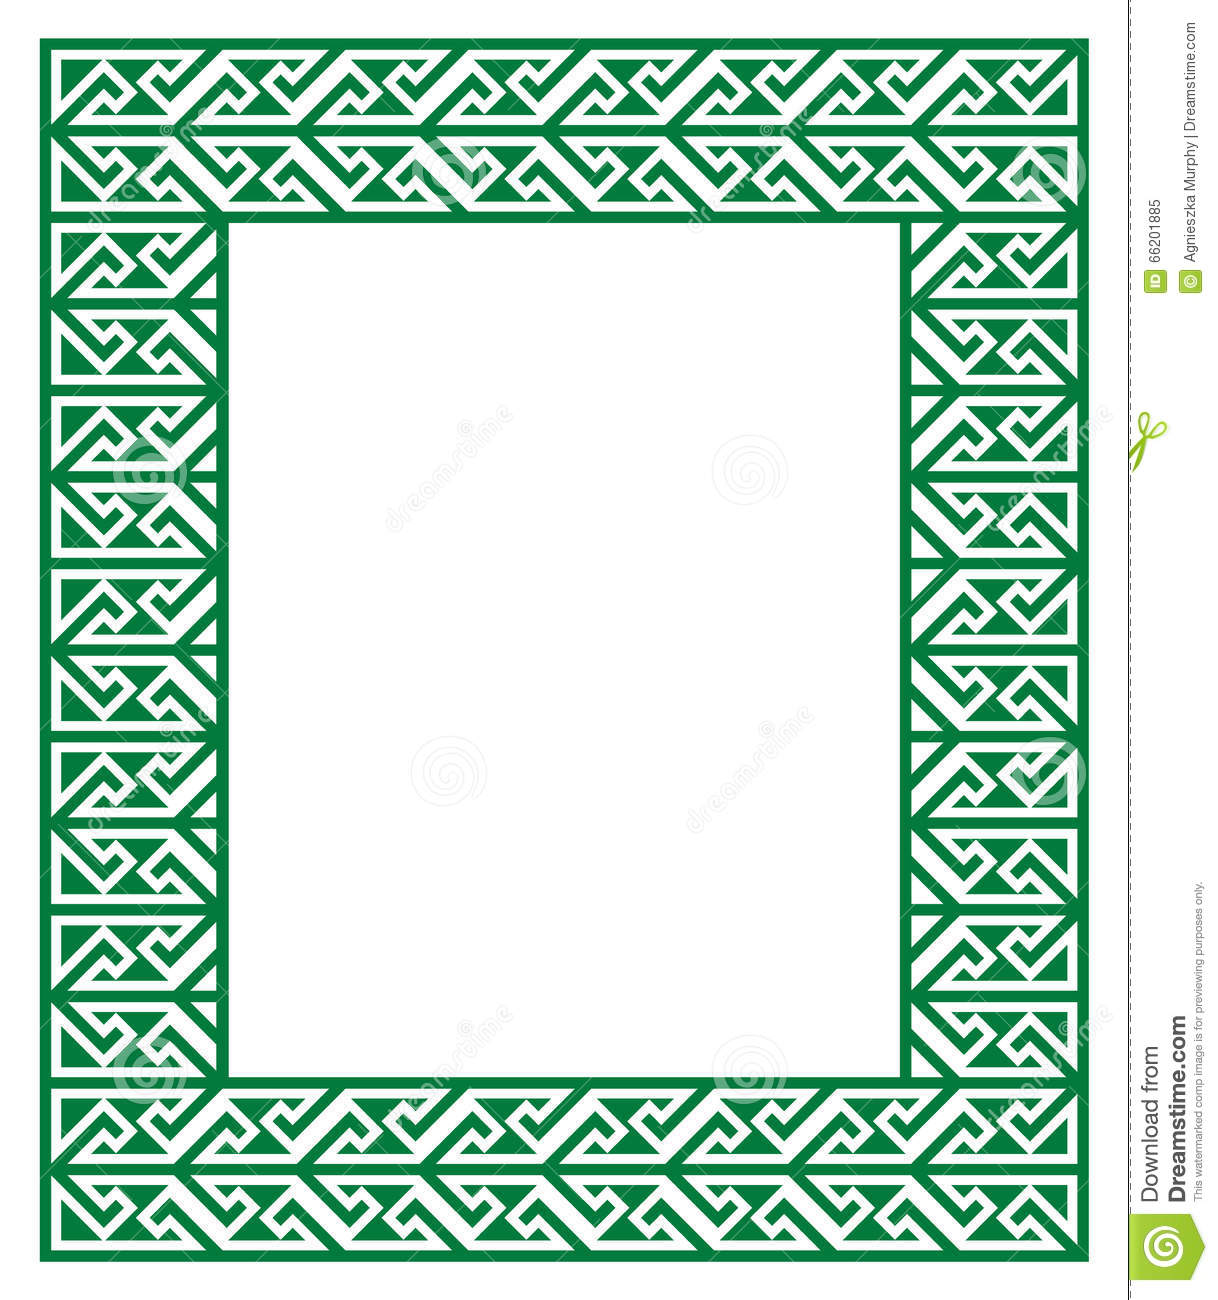 Stock Illustration Celtic Key Pattern Green Frame Border Irish Black White Image66201885 on Green Spiral Symbol